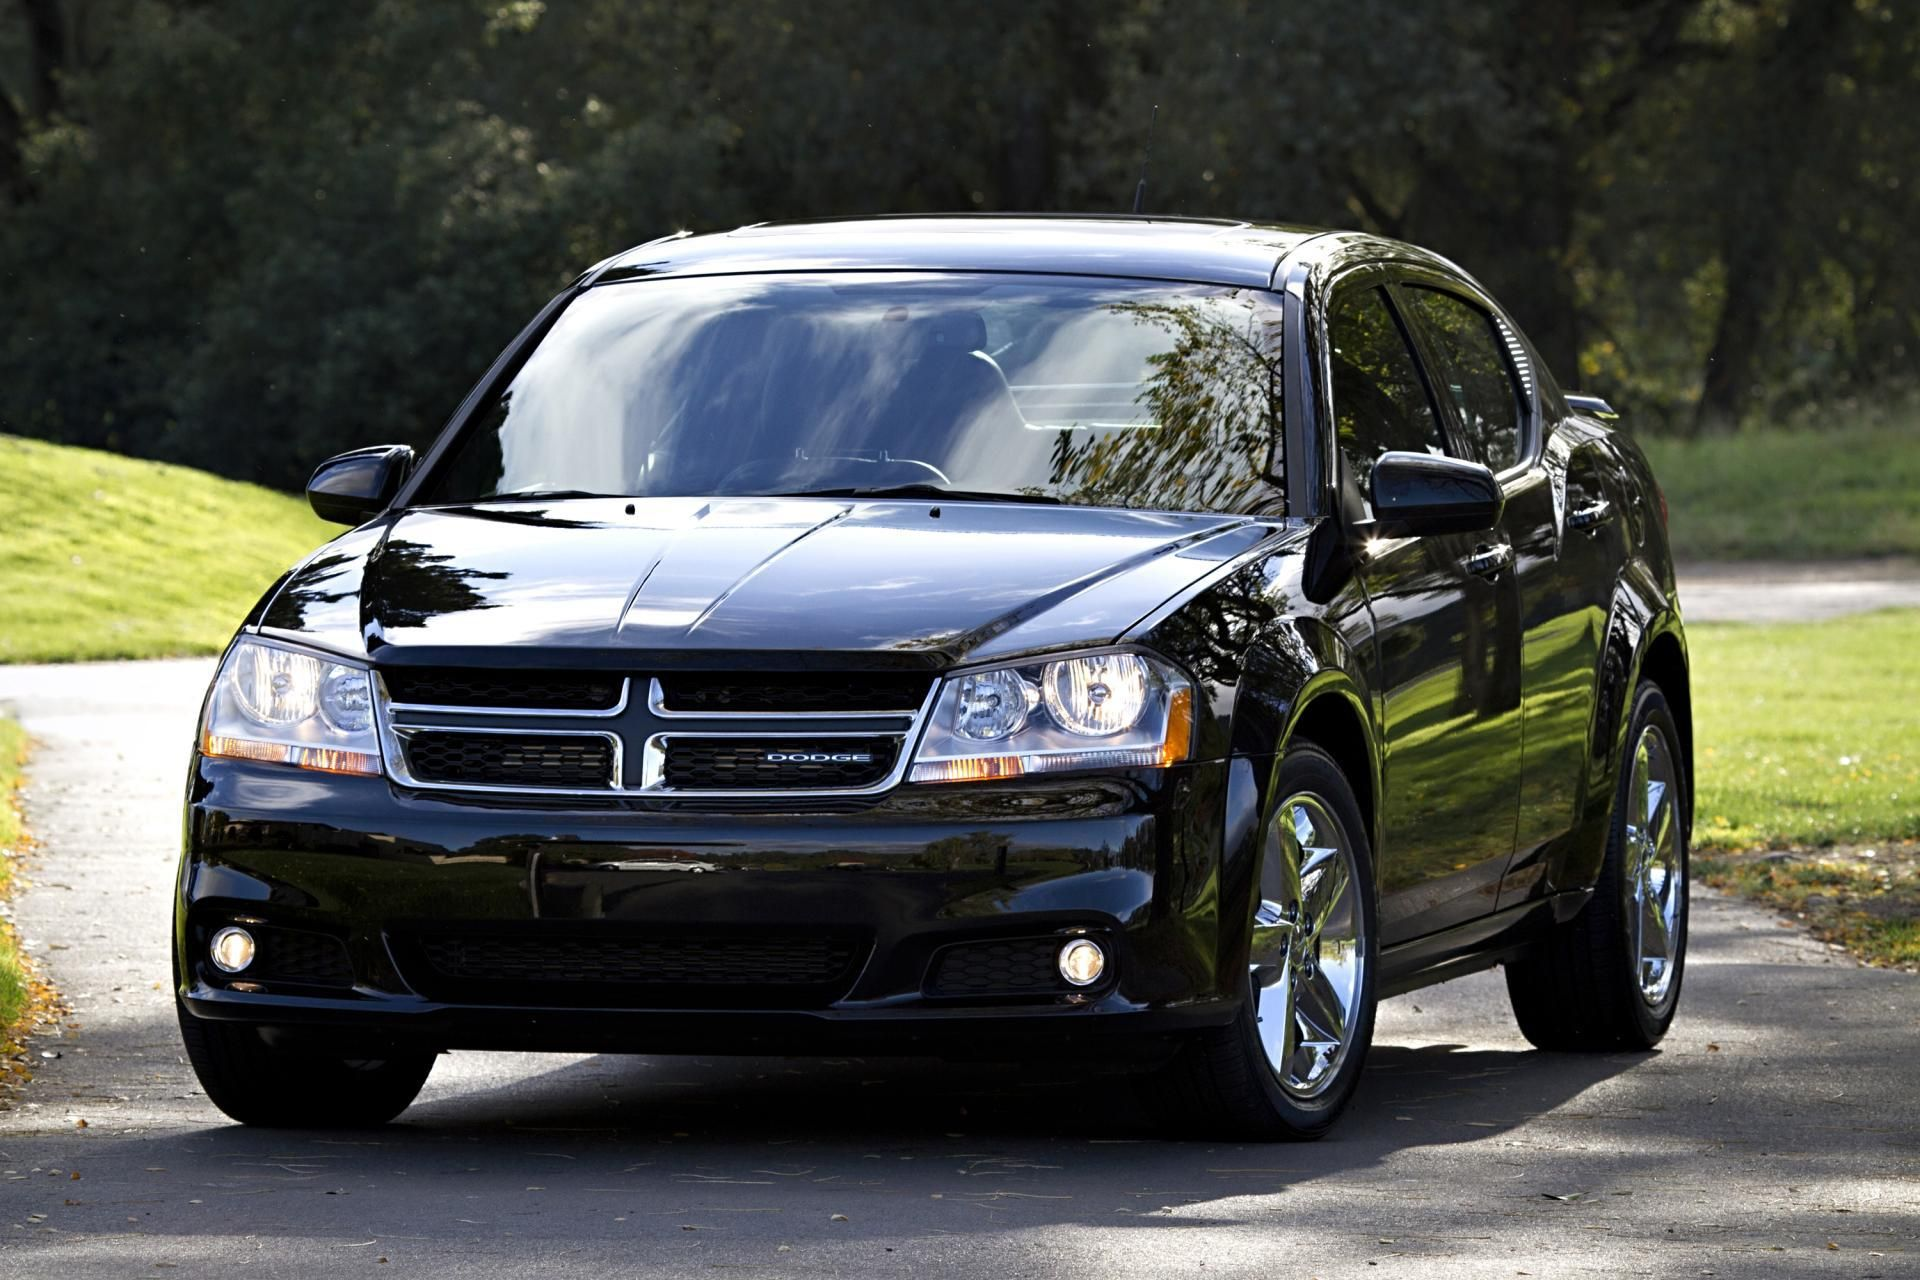 76 New 2020 Dodge Avenger Redesign and Review